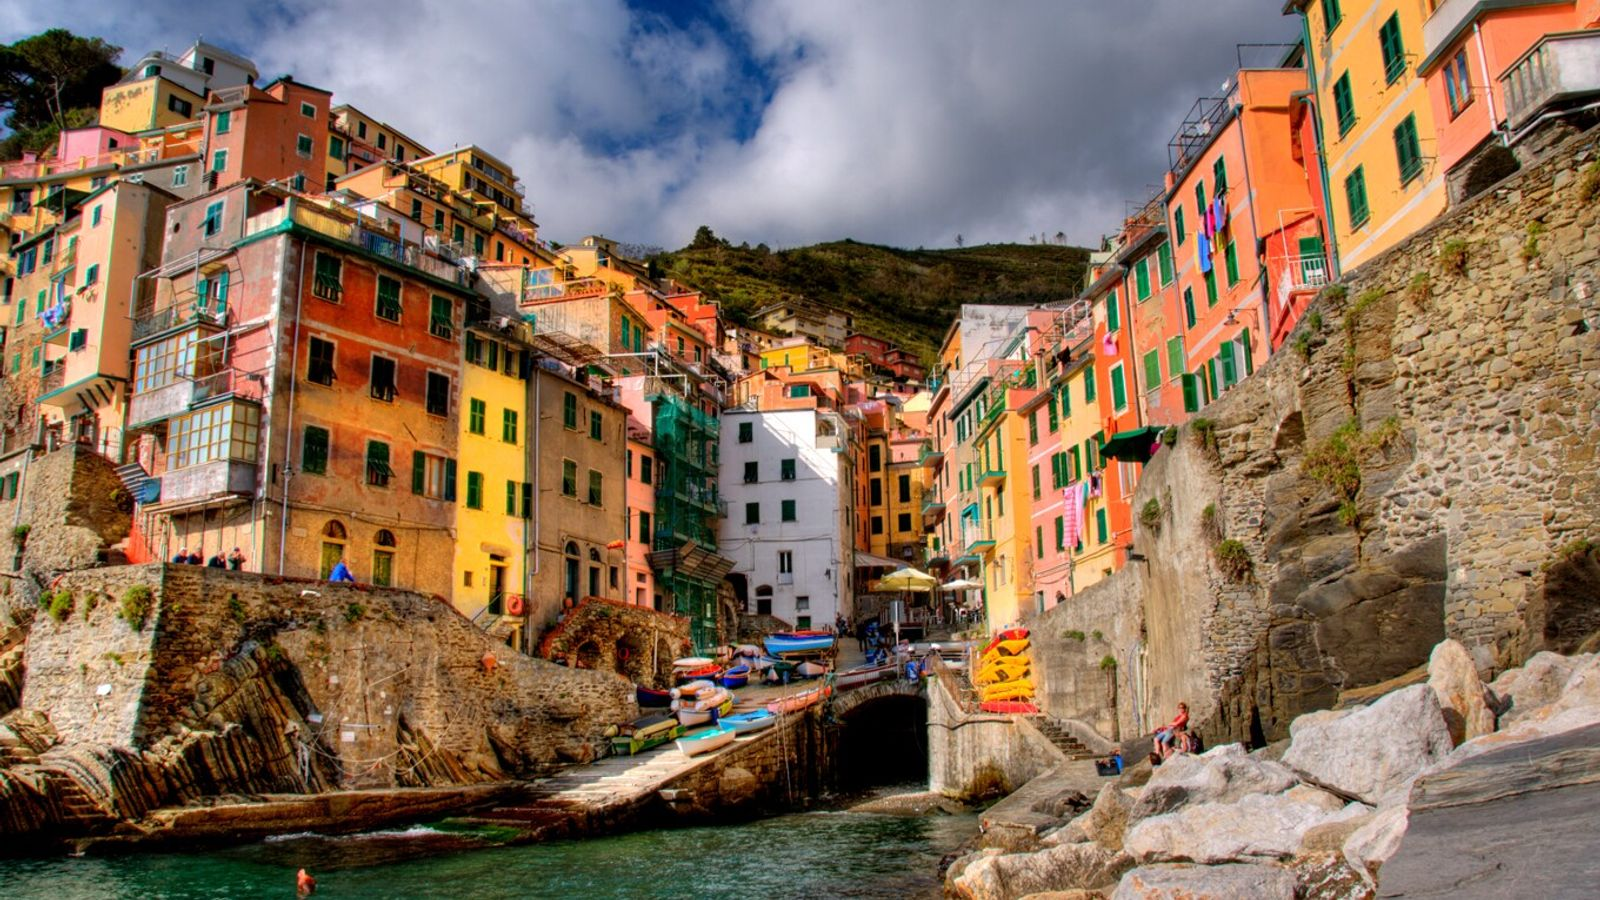 Riomaggiore, one of the festively-painted Cinque Terre of northwestern Italy.